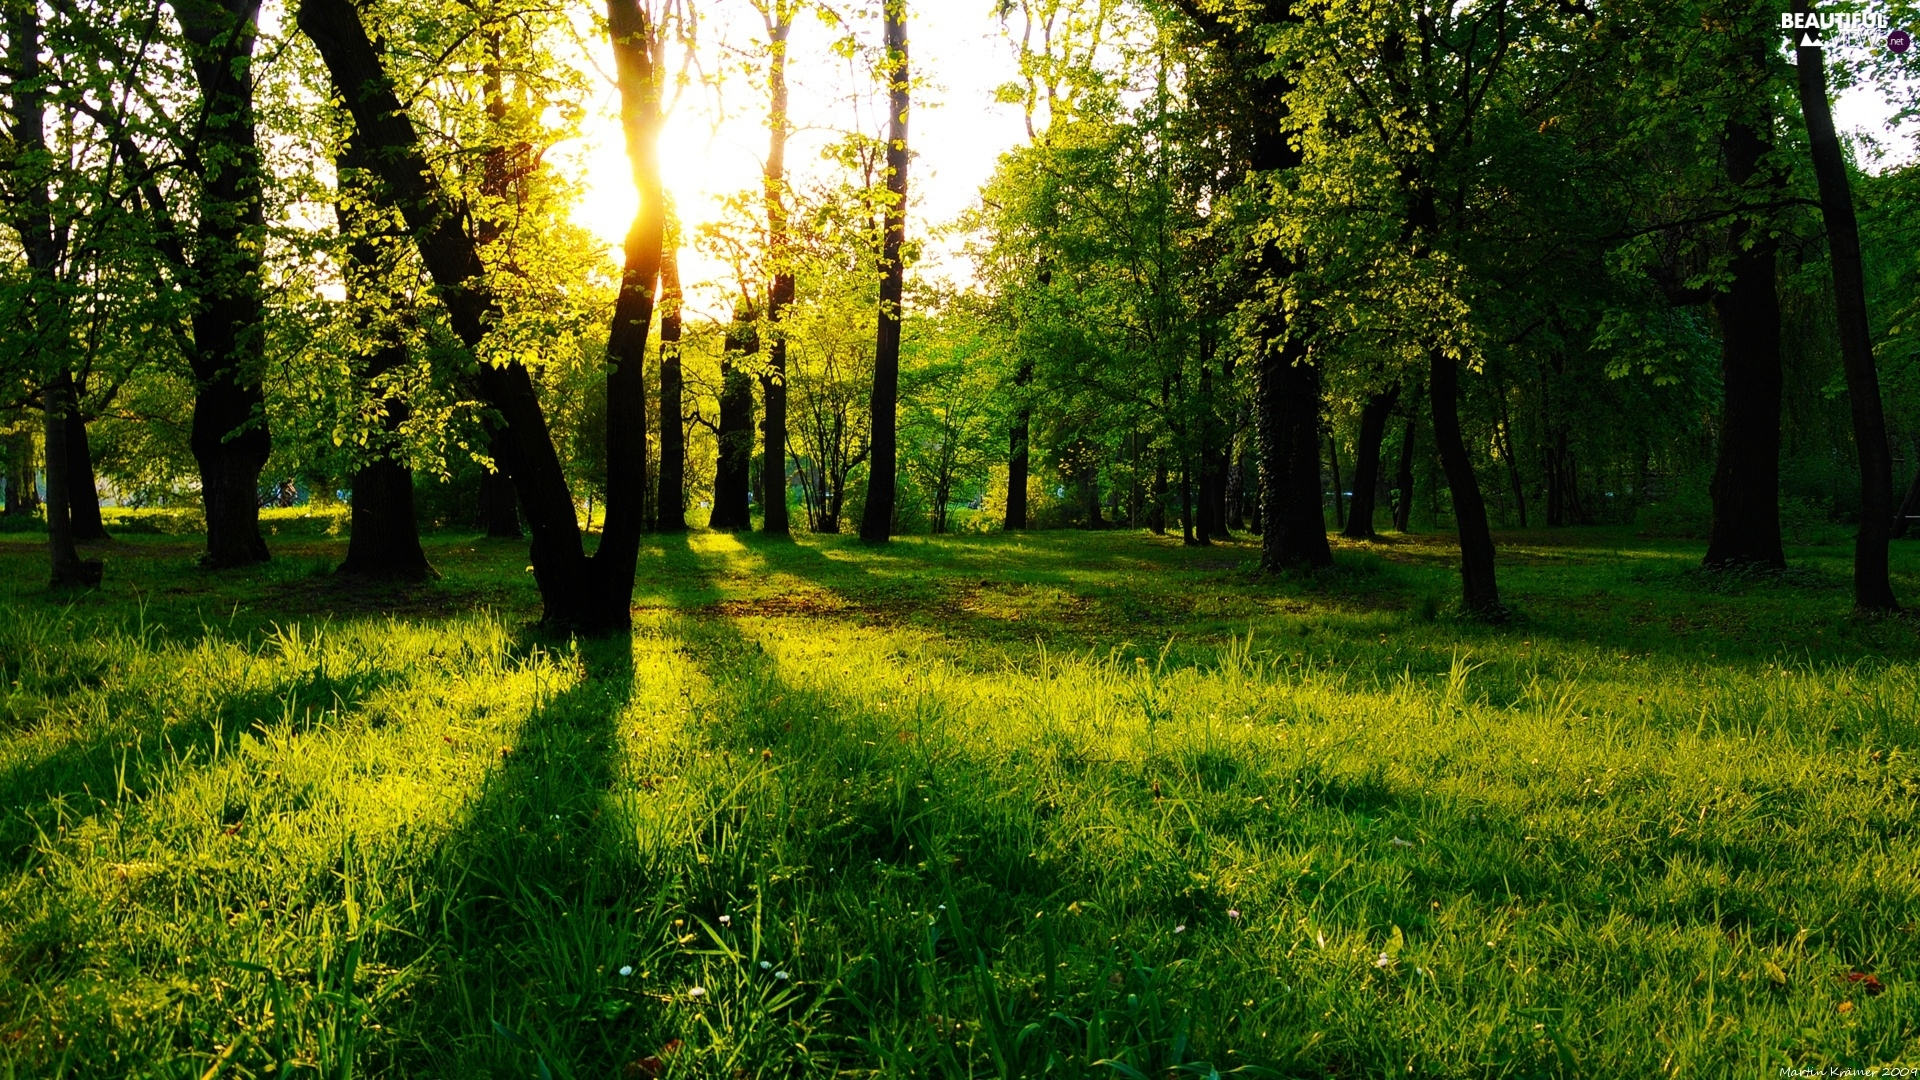 trees, nature, rays, sun, viewes, forest